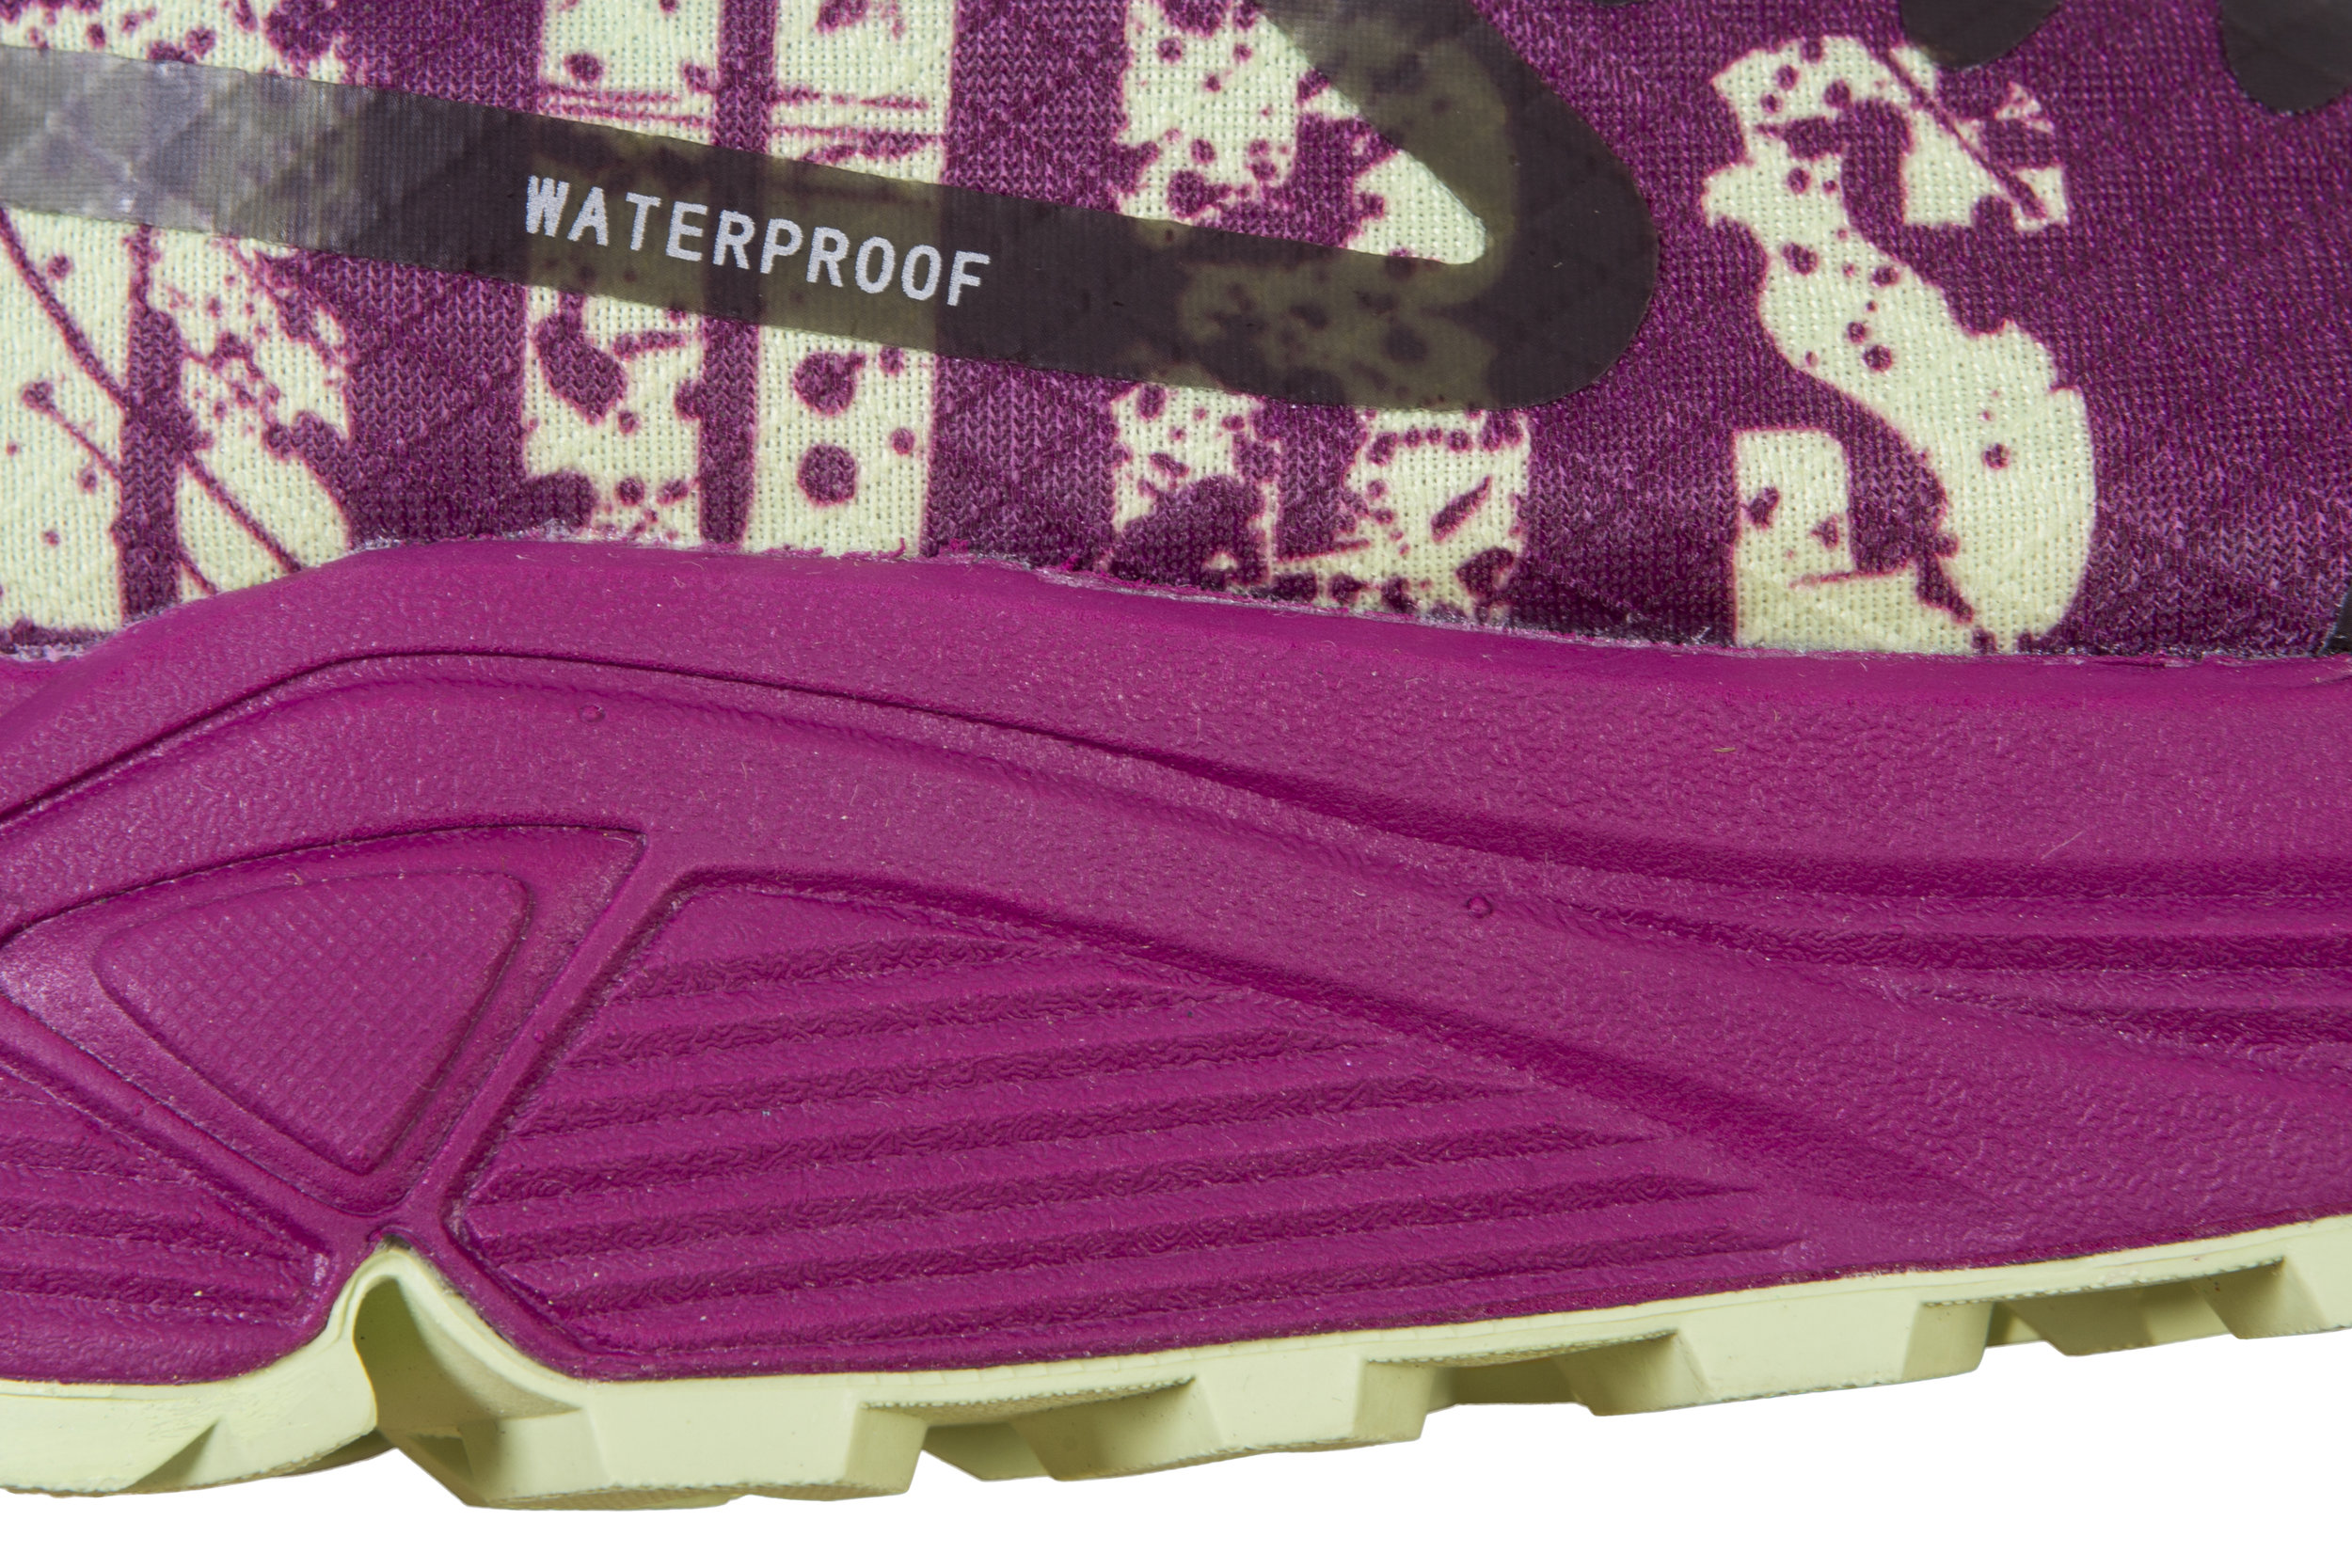 WATERPROOF! HYDROFUSE technology is lightweight, highly breathable and very waterproof.